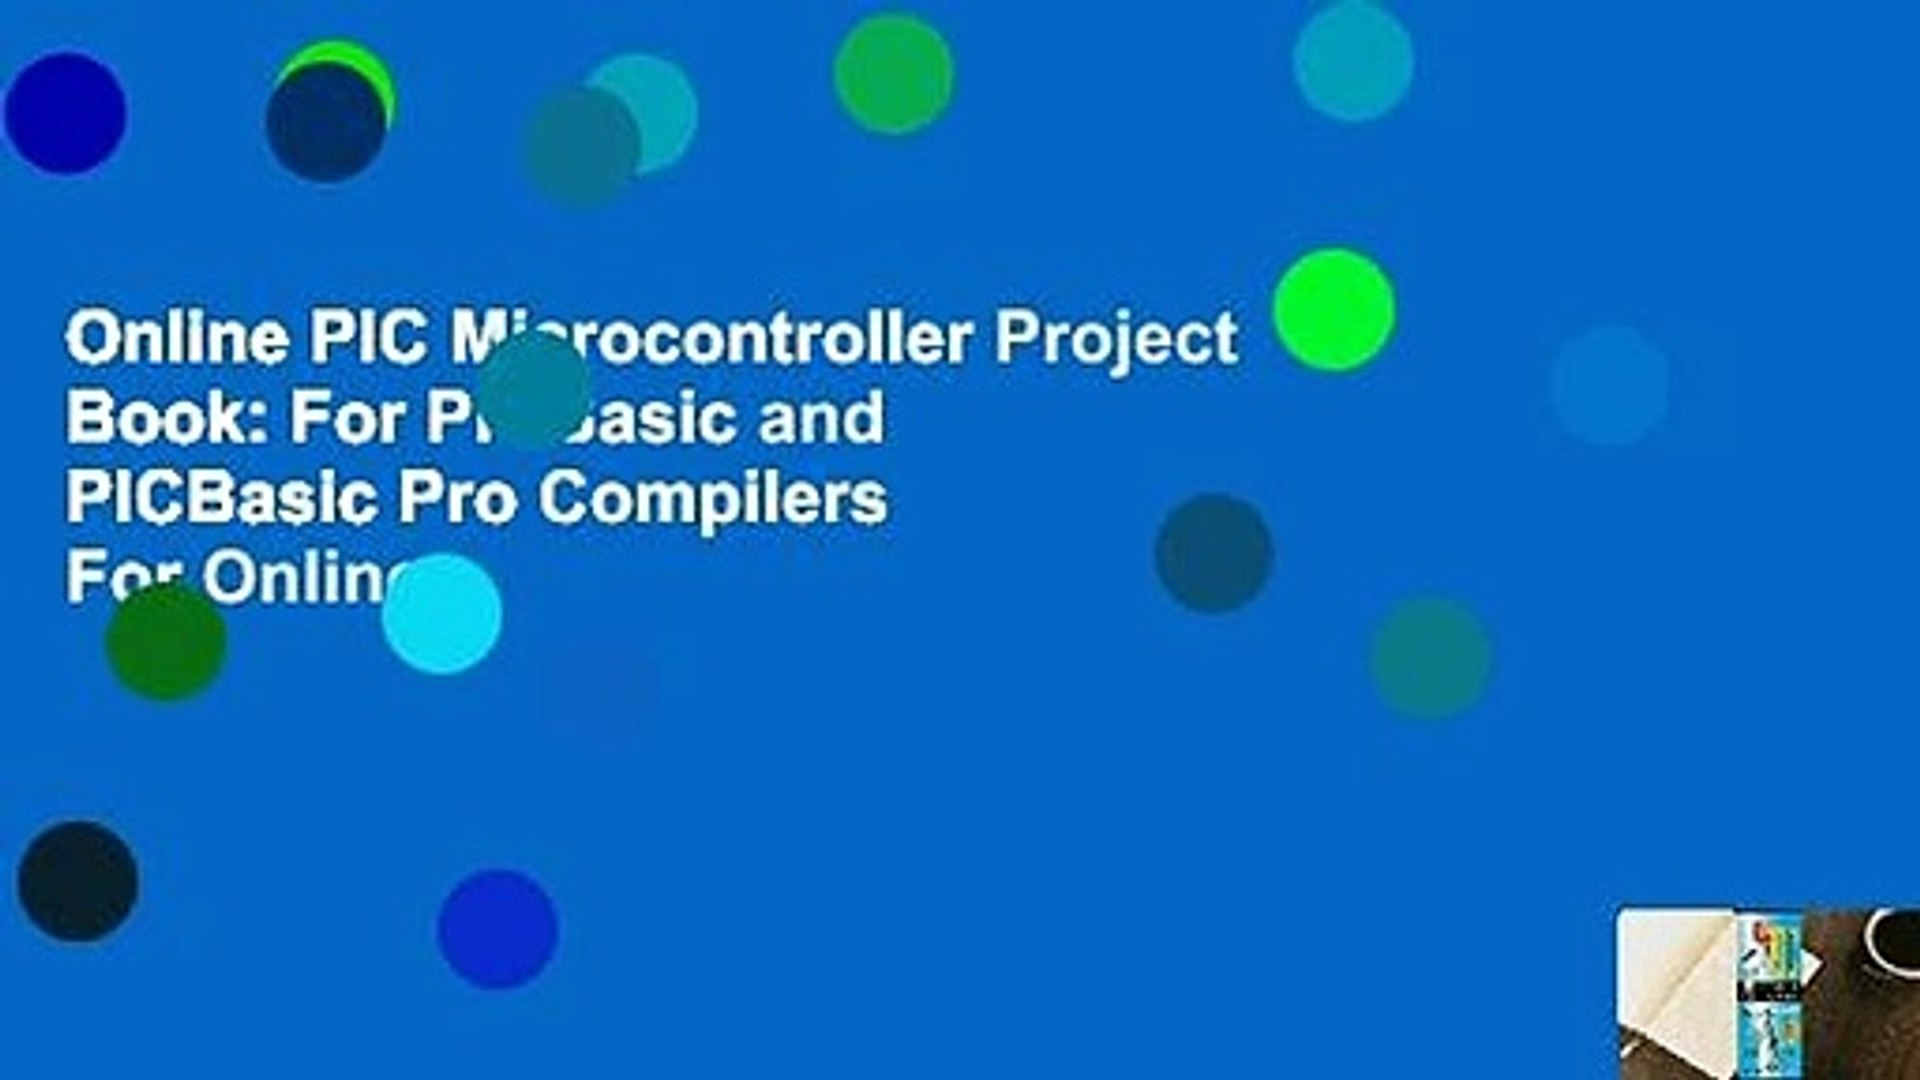 Online PIC Microcontroller Project Book: For PICBasic and PICBasic Pro  Compilers For Online